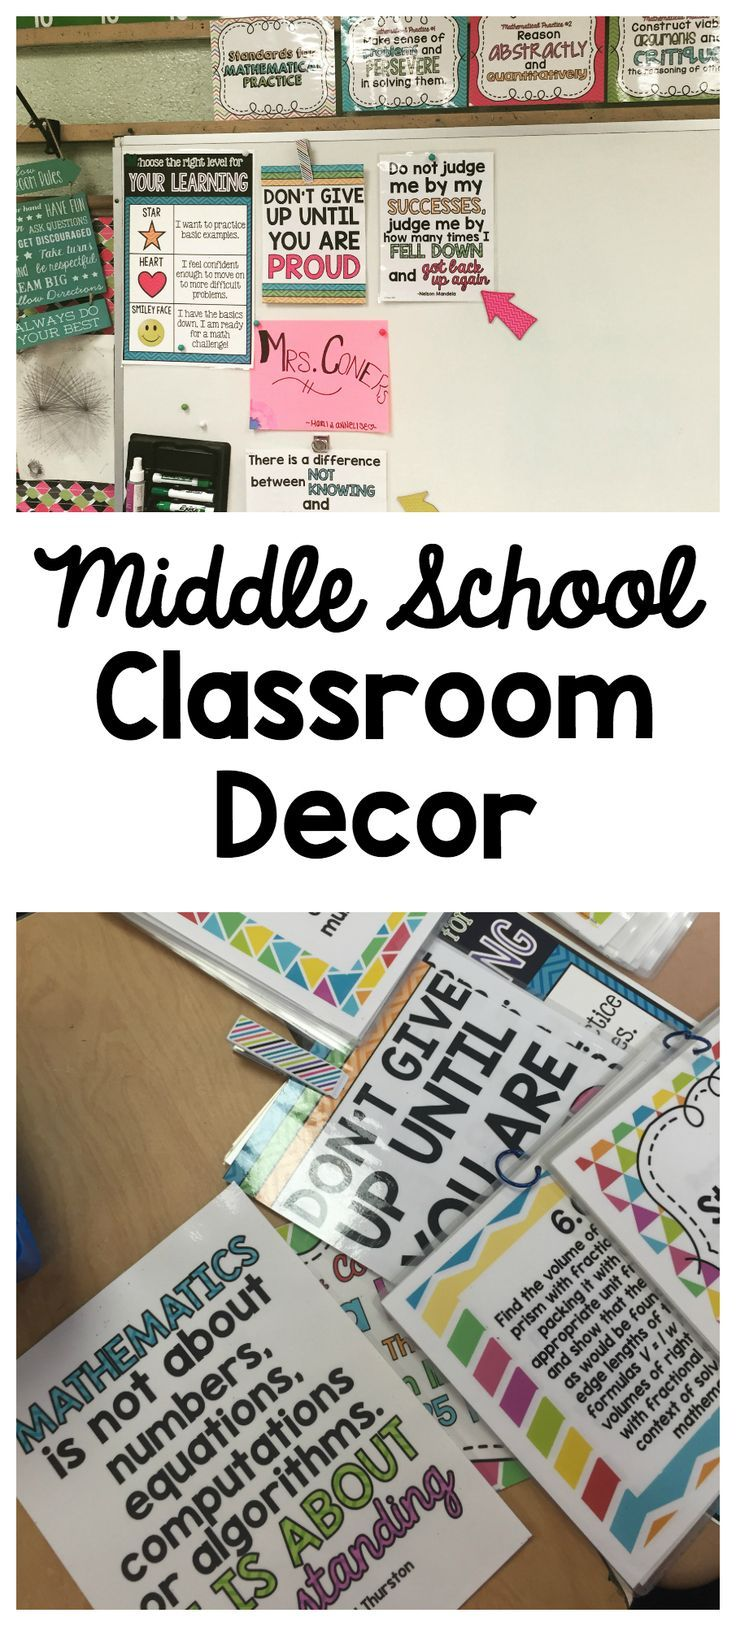 Classroom Decorating Ideas Middle School Math ~ Best images about teachering on pinterest math talk